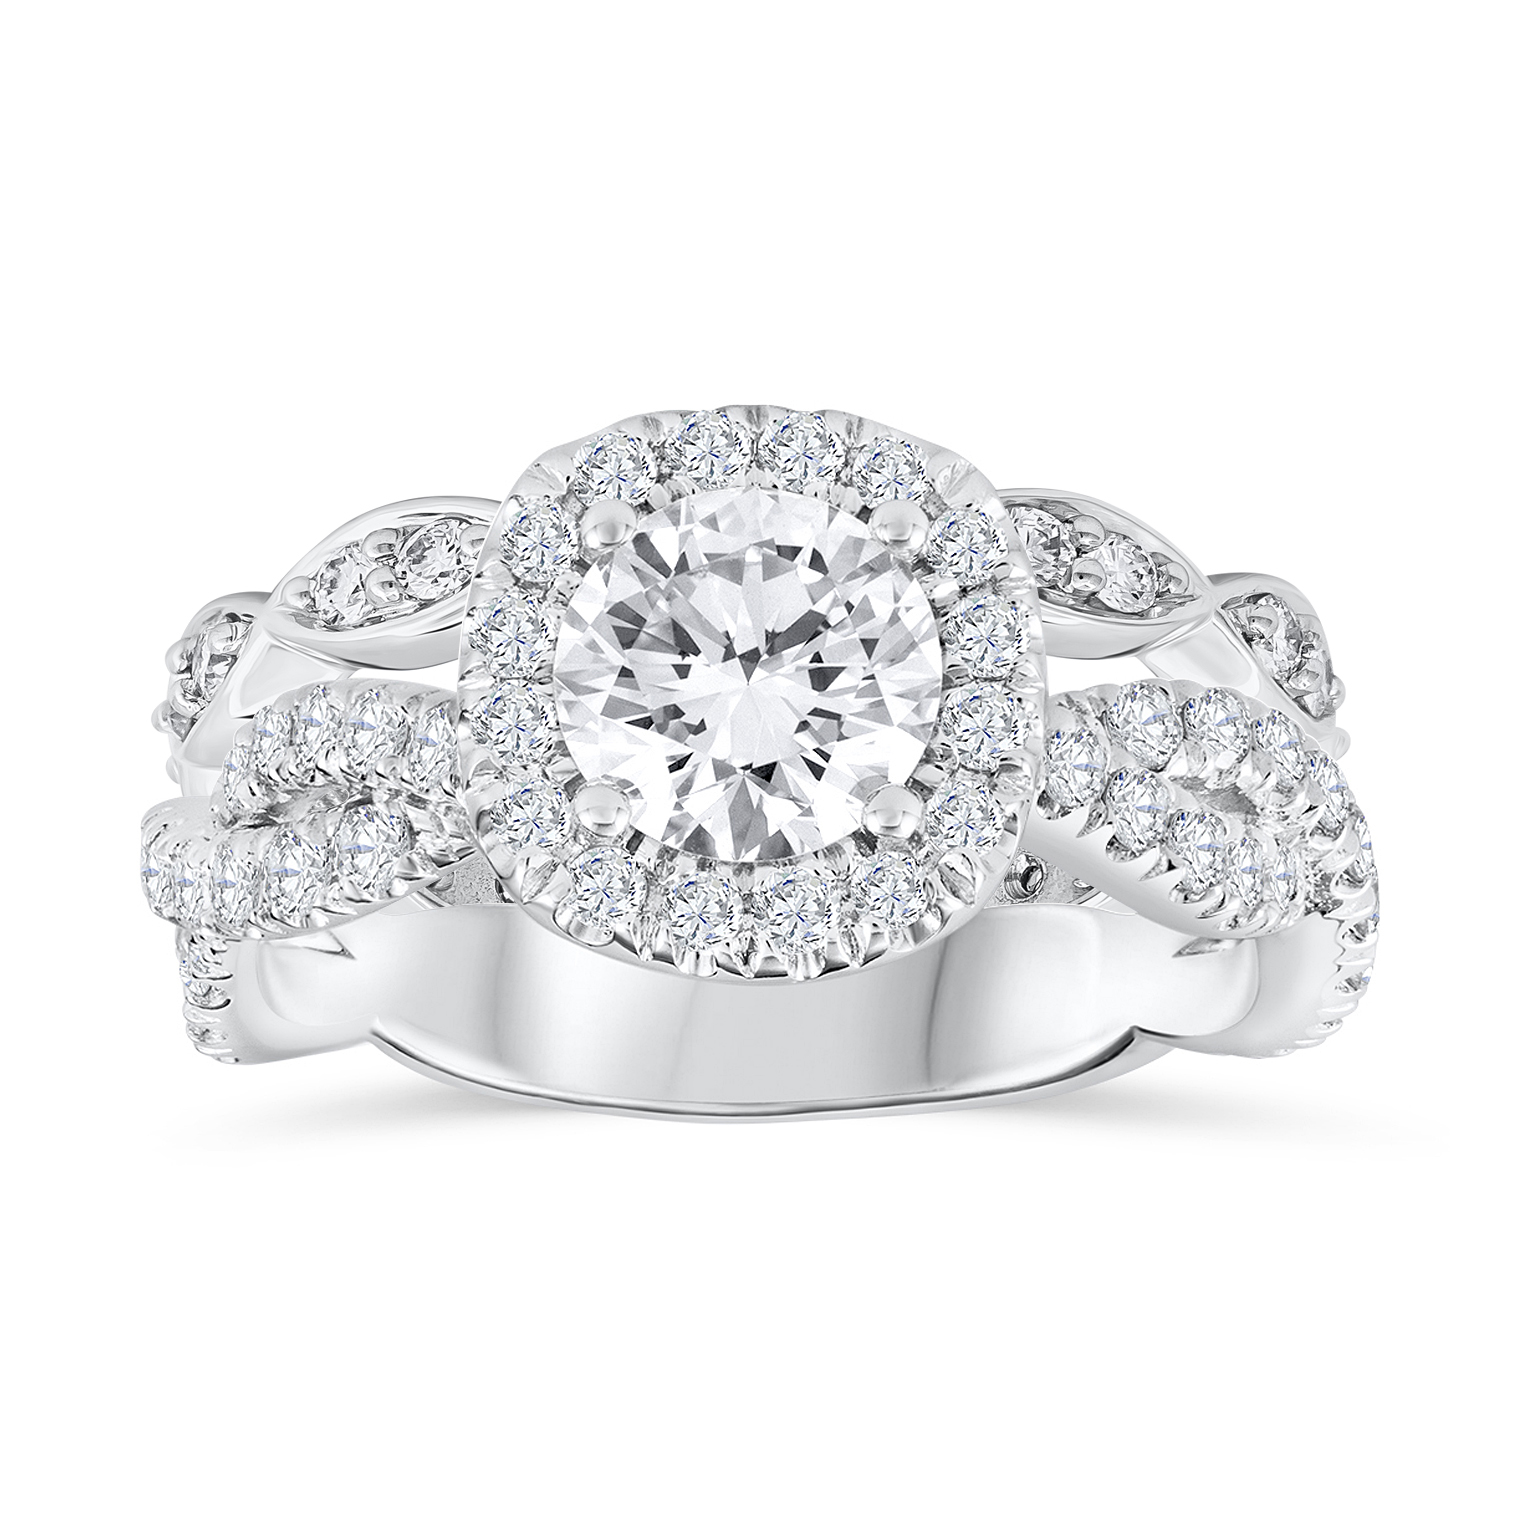 Diamond Halo Infinity Engagement Ring  matched with an  infinity-looking diamond eternity wedding band